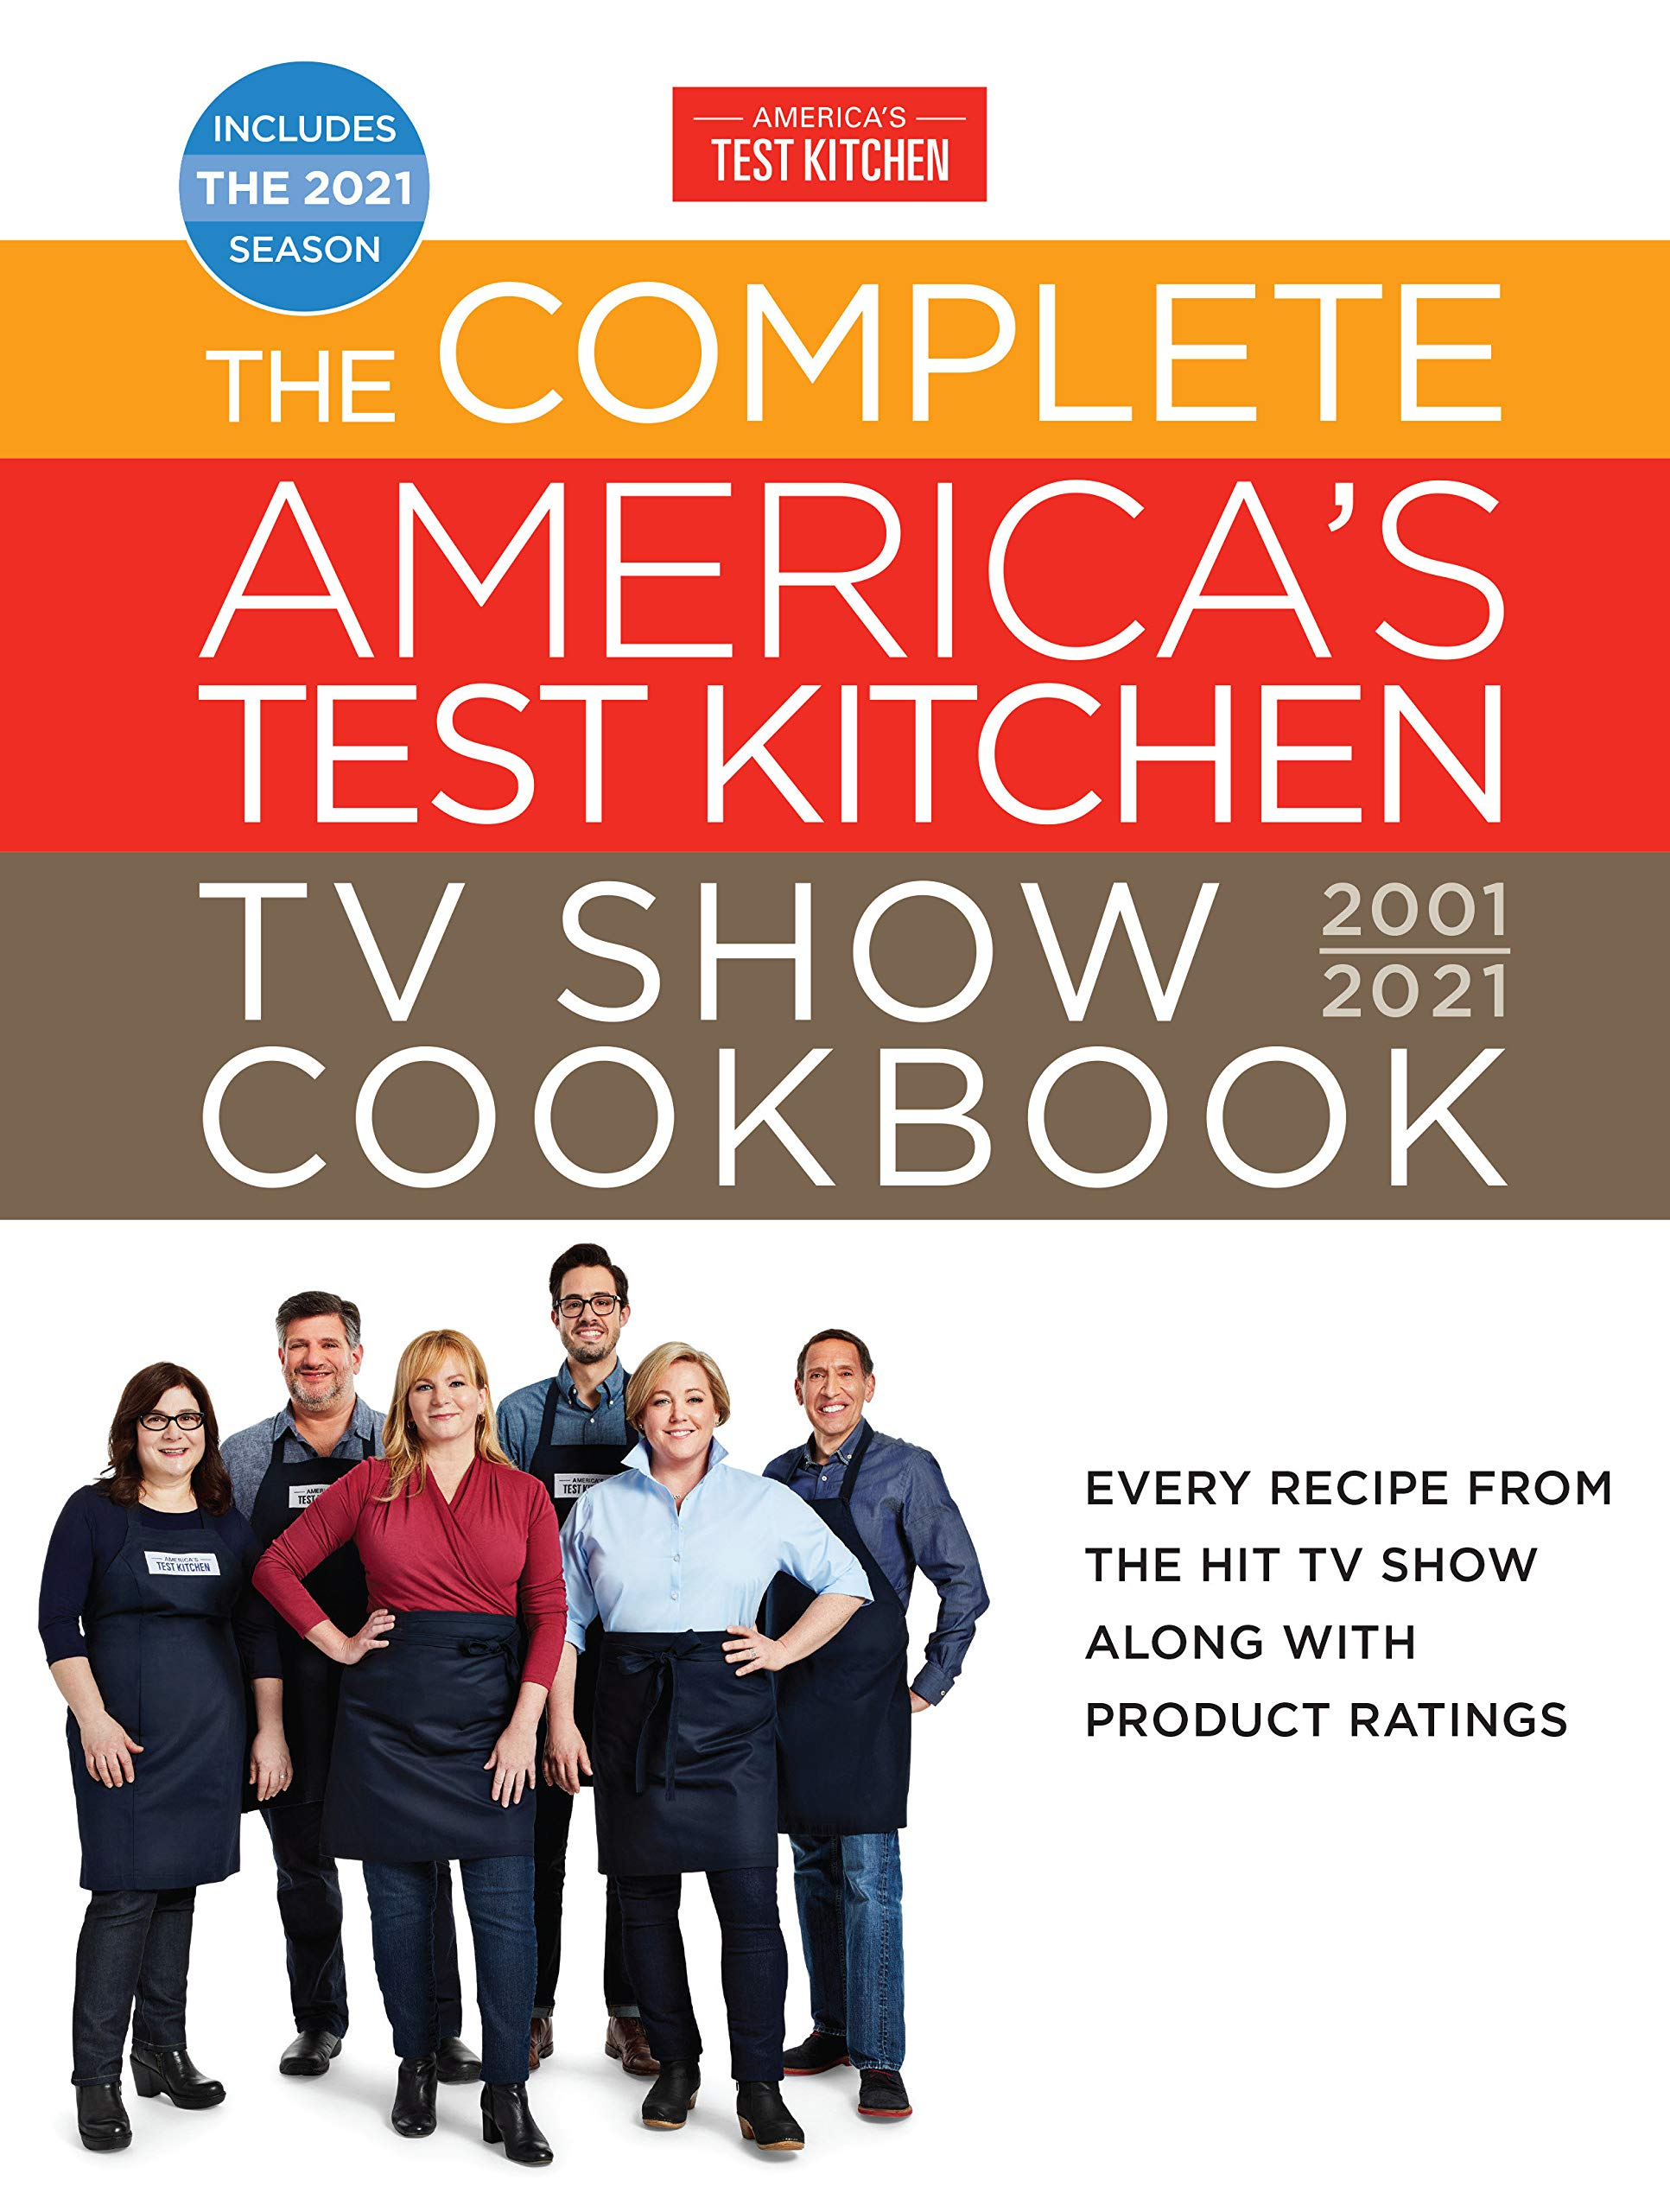 The Complete America S Test Kitchen Tv Show Cookbook 2001 2021 Every Recipe From The Hit Tv Show Along With Product Ratings Includes The 2021 Season America S Test Kitchen 9781948703420 Books Amazon Ca